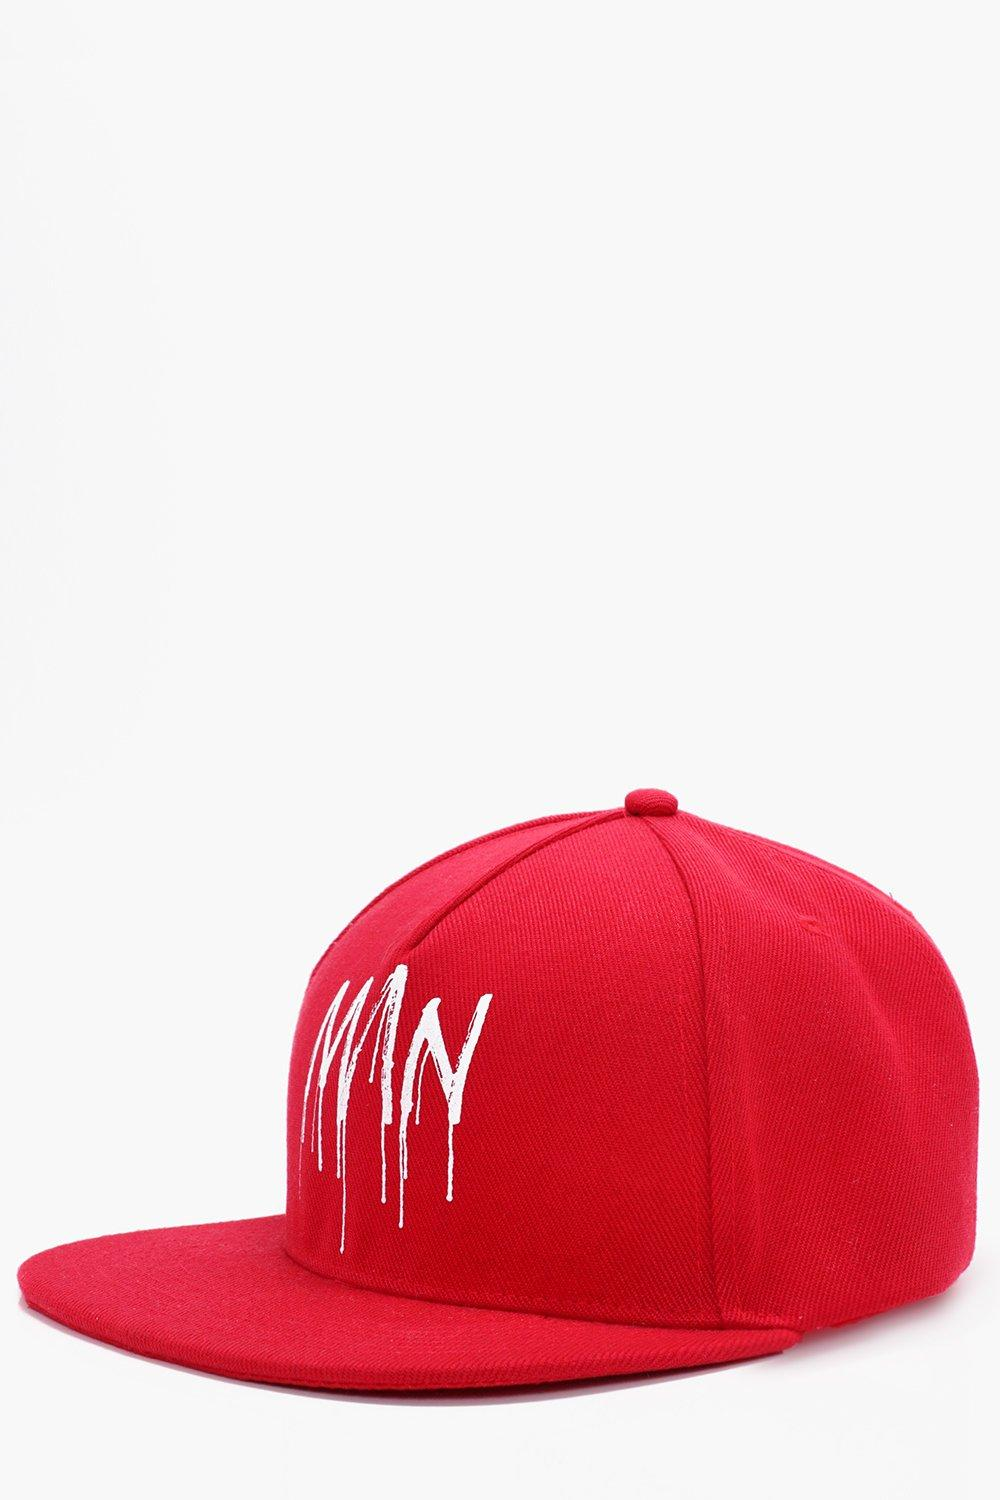 Graffiti Printed Snap Back - red - Man Graffiti Pr